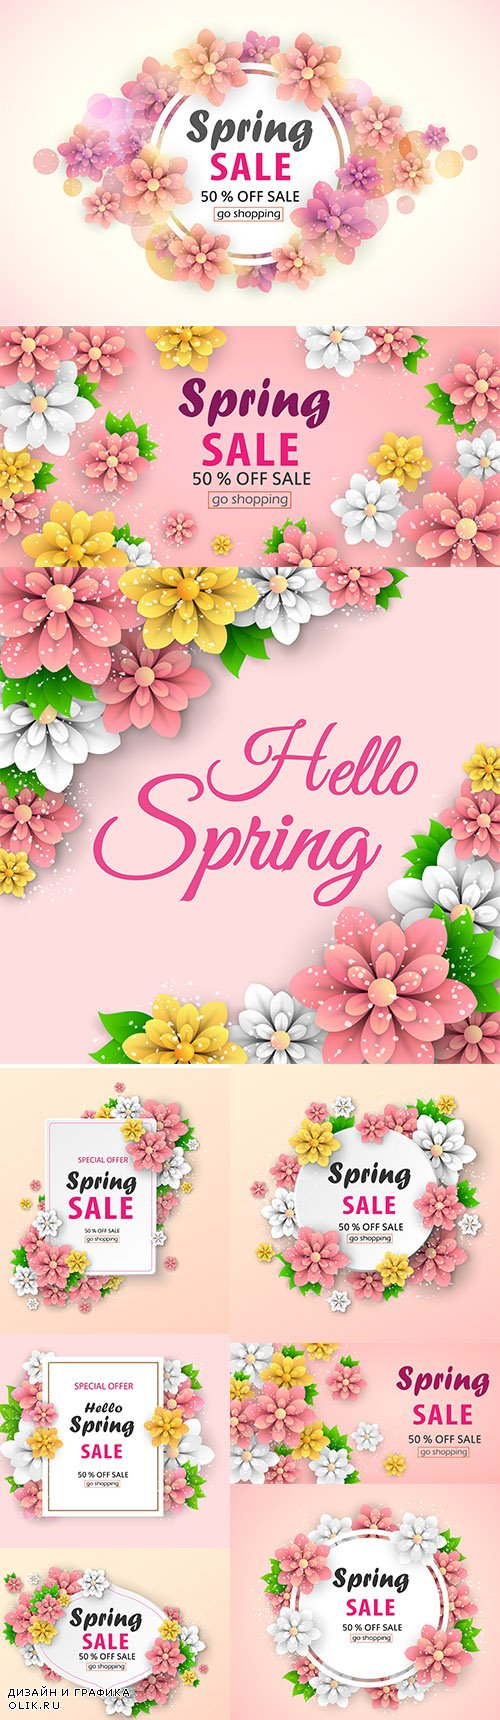 Colorful Spring Sale Banner with Beautiful Flowers